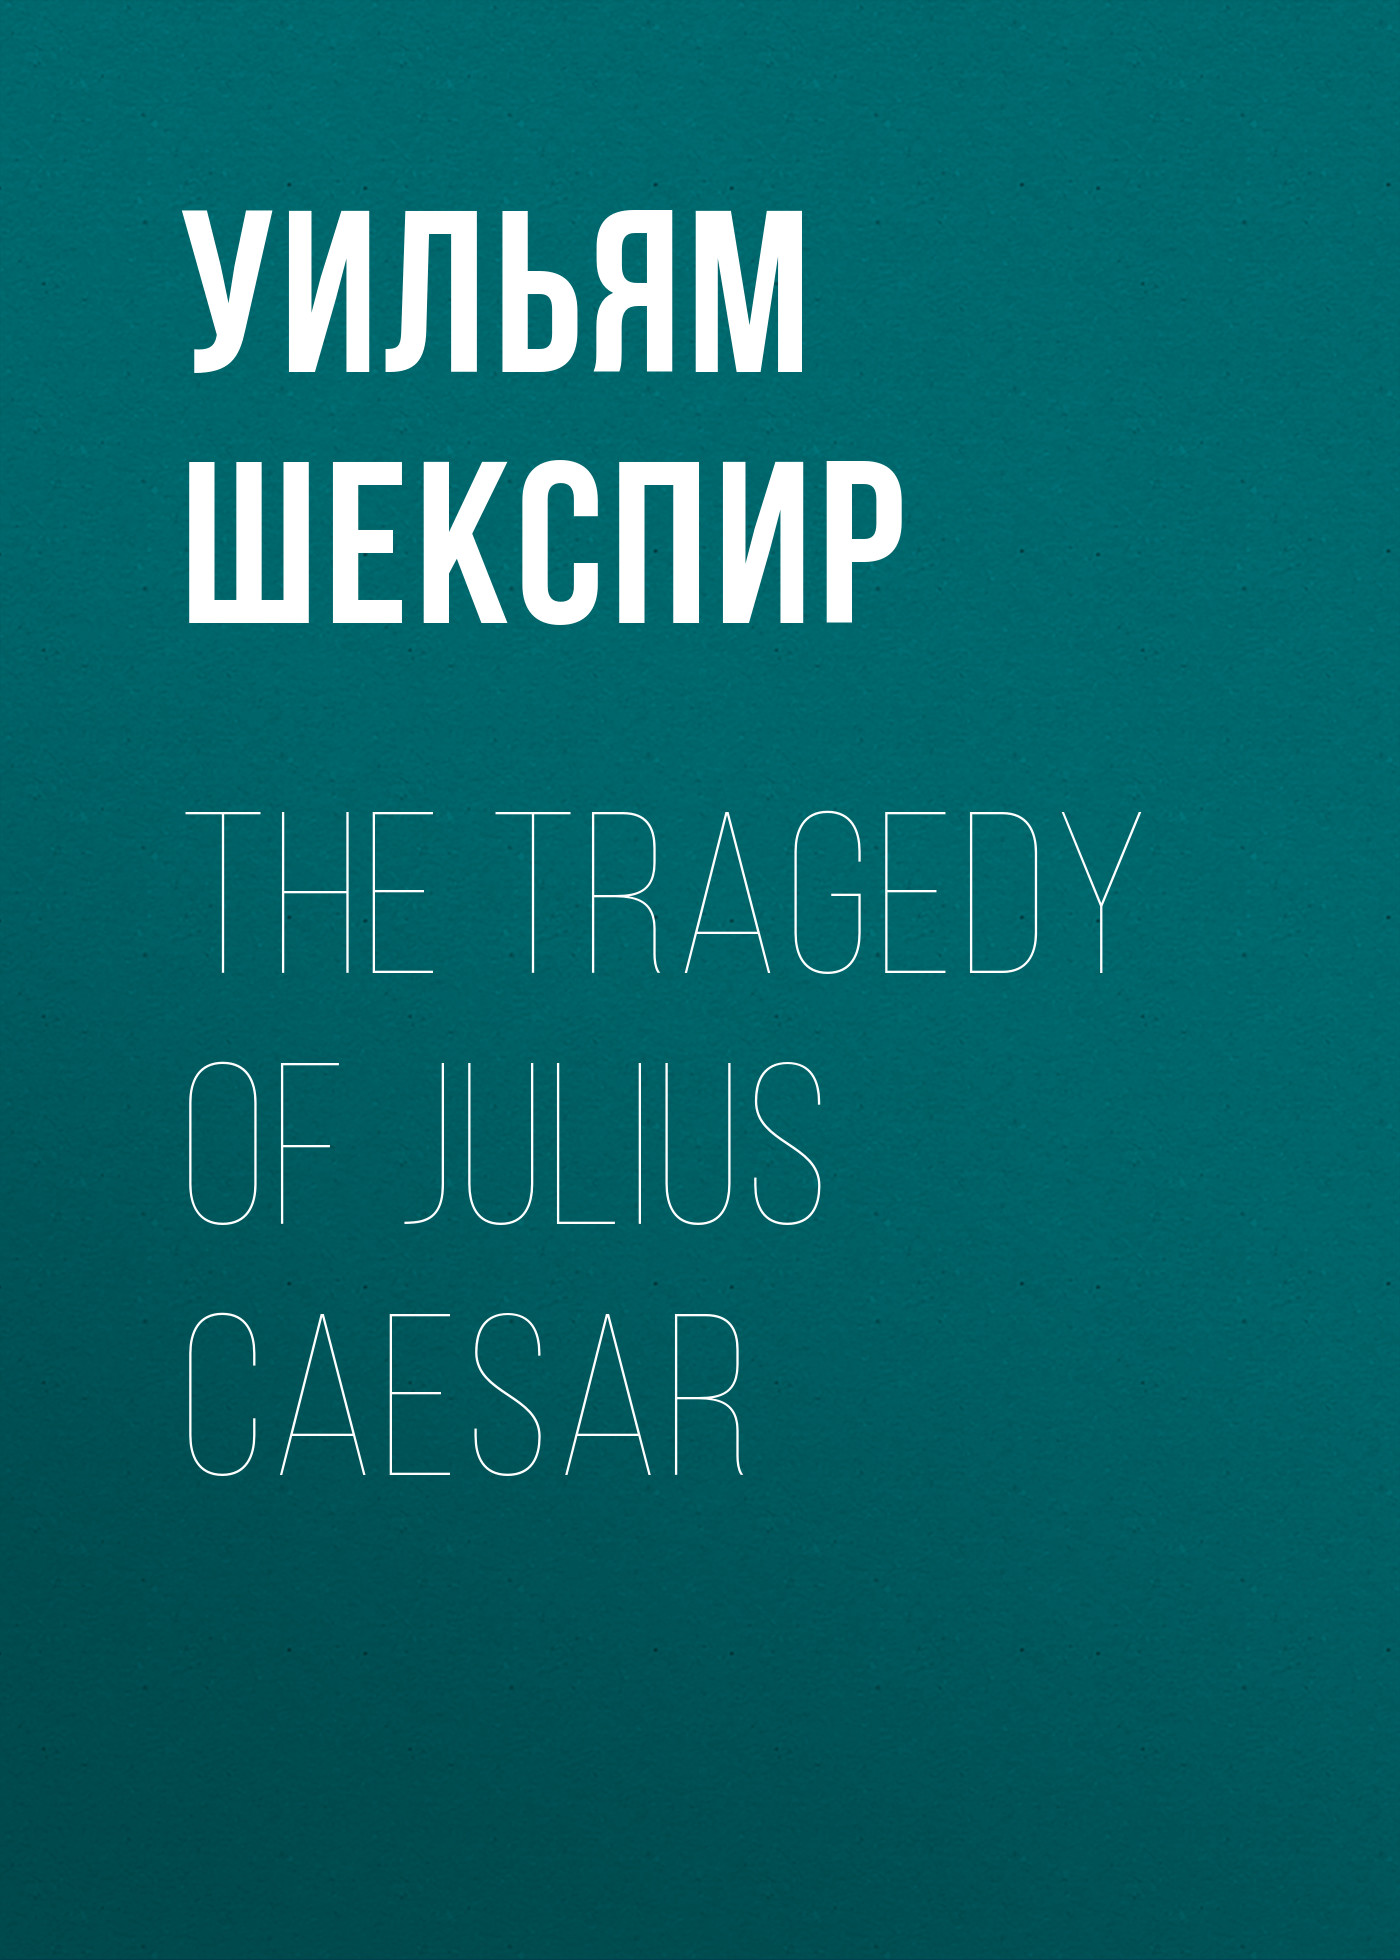 Уильям Шекспир The Tragedy of Julius Caesar julius caesar ne bk d